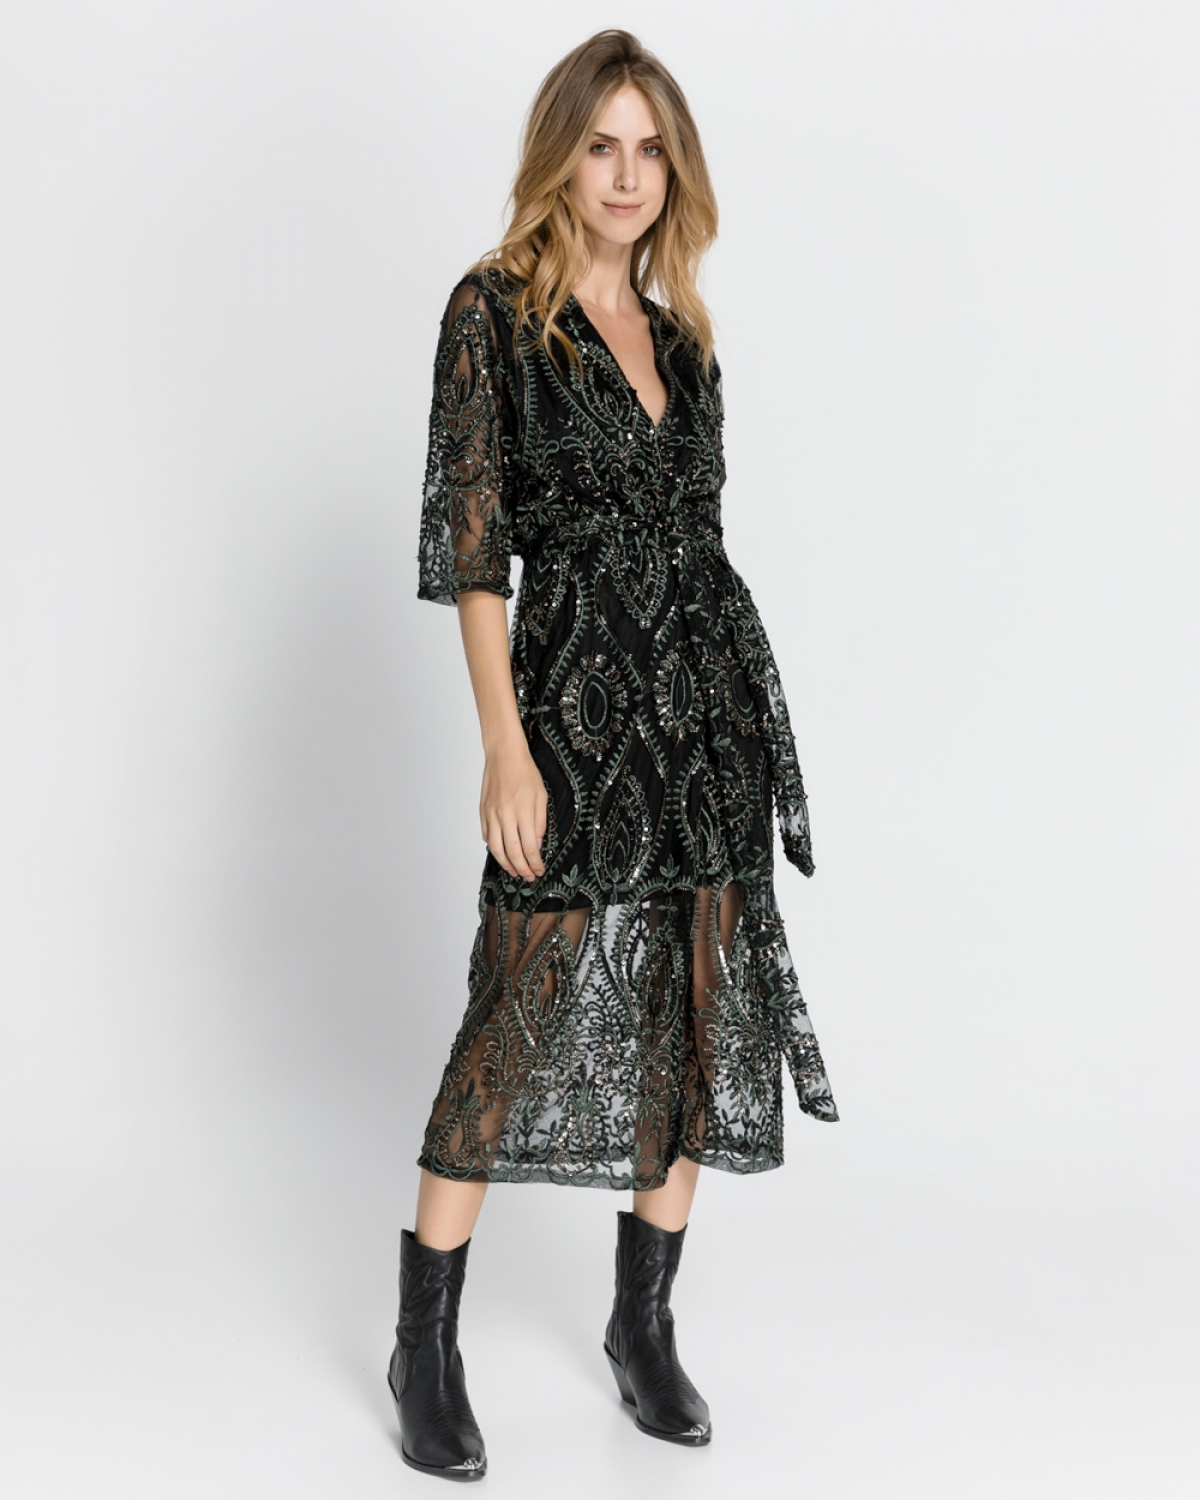 Midi Sequined Embroidery Black-Green Dress